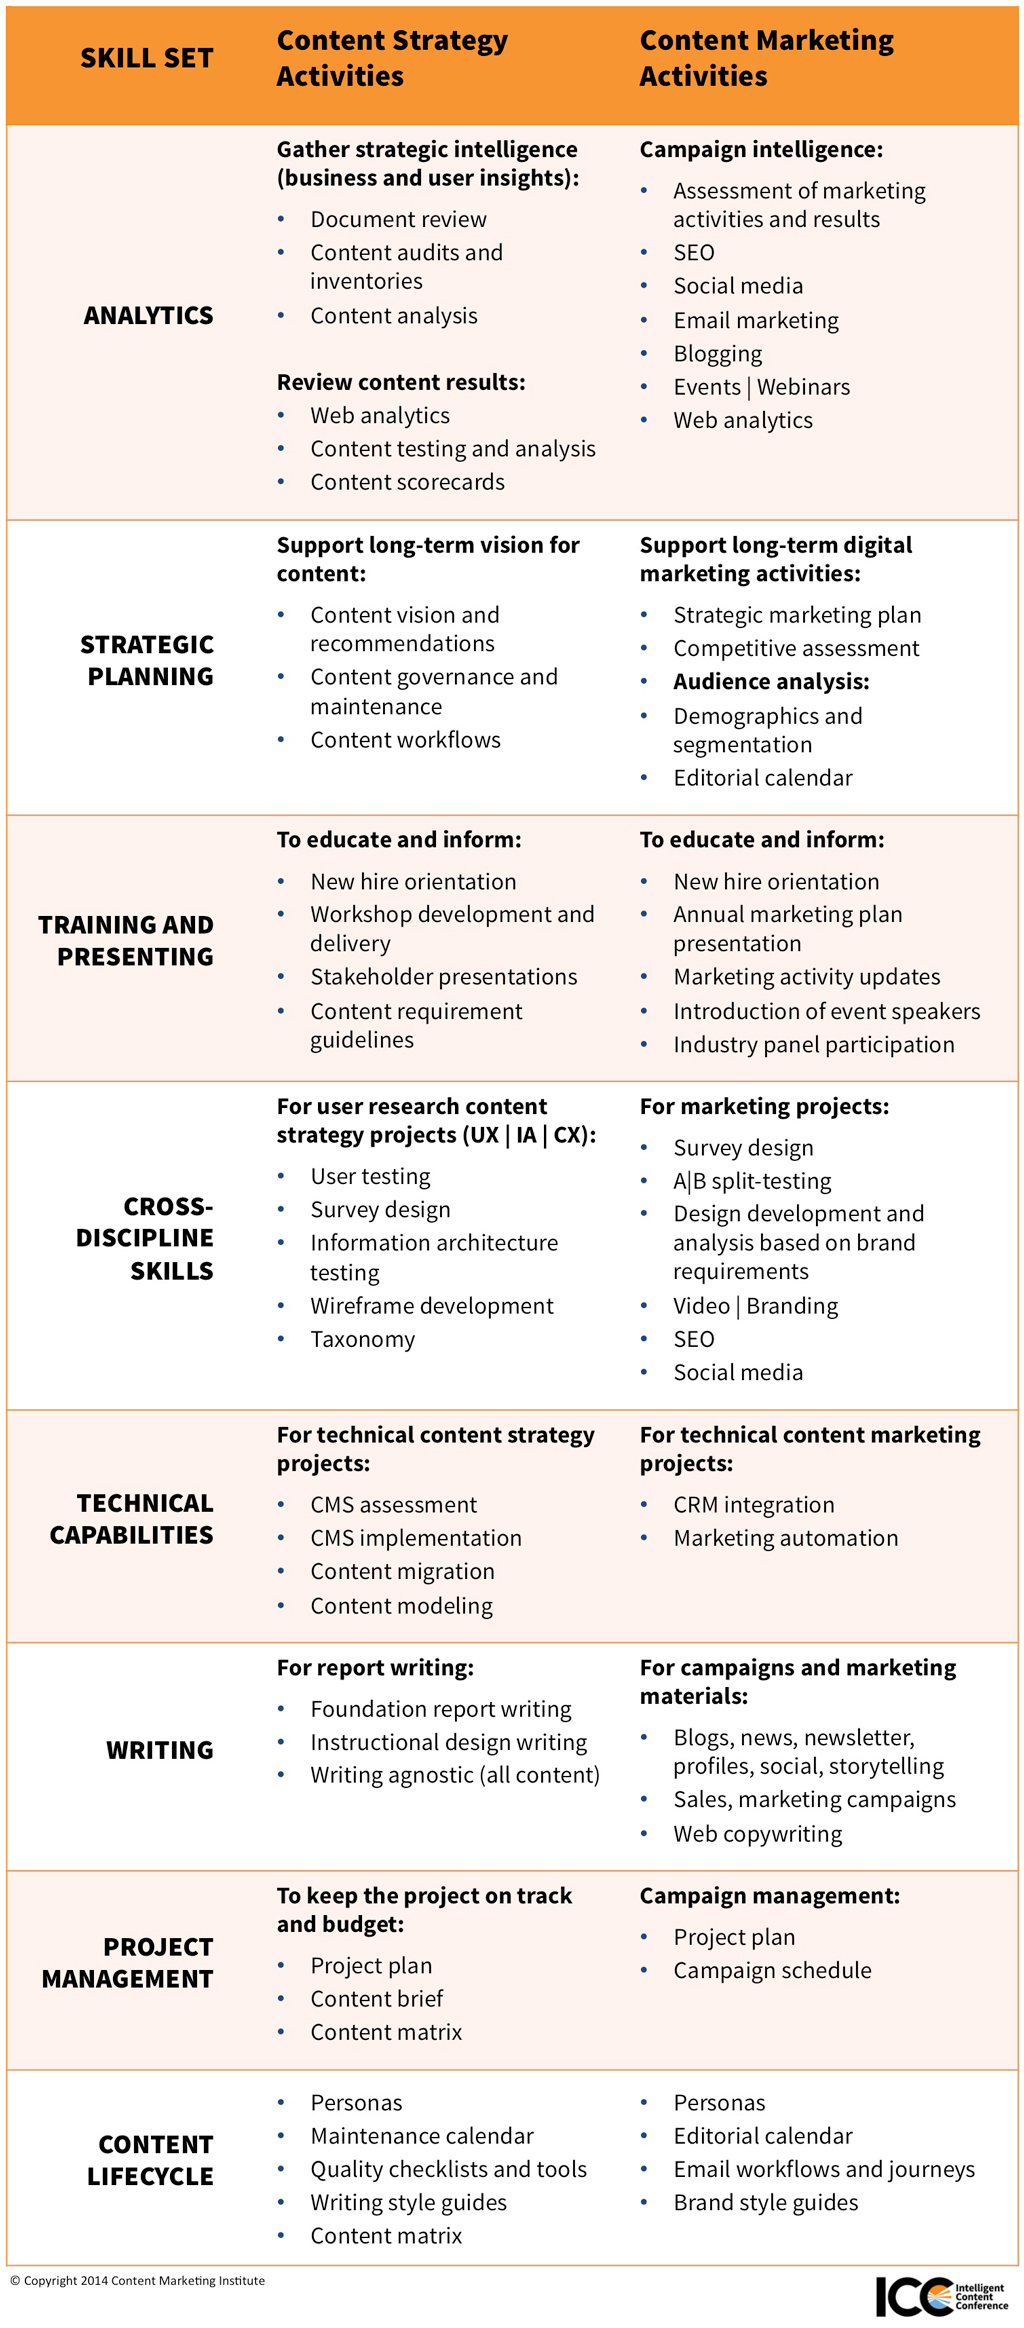 Content Marketing vs Content Strategy How Do Their Skill